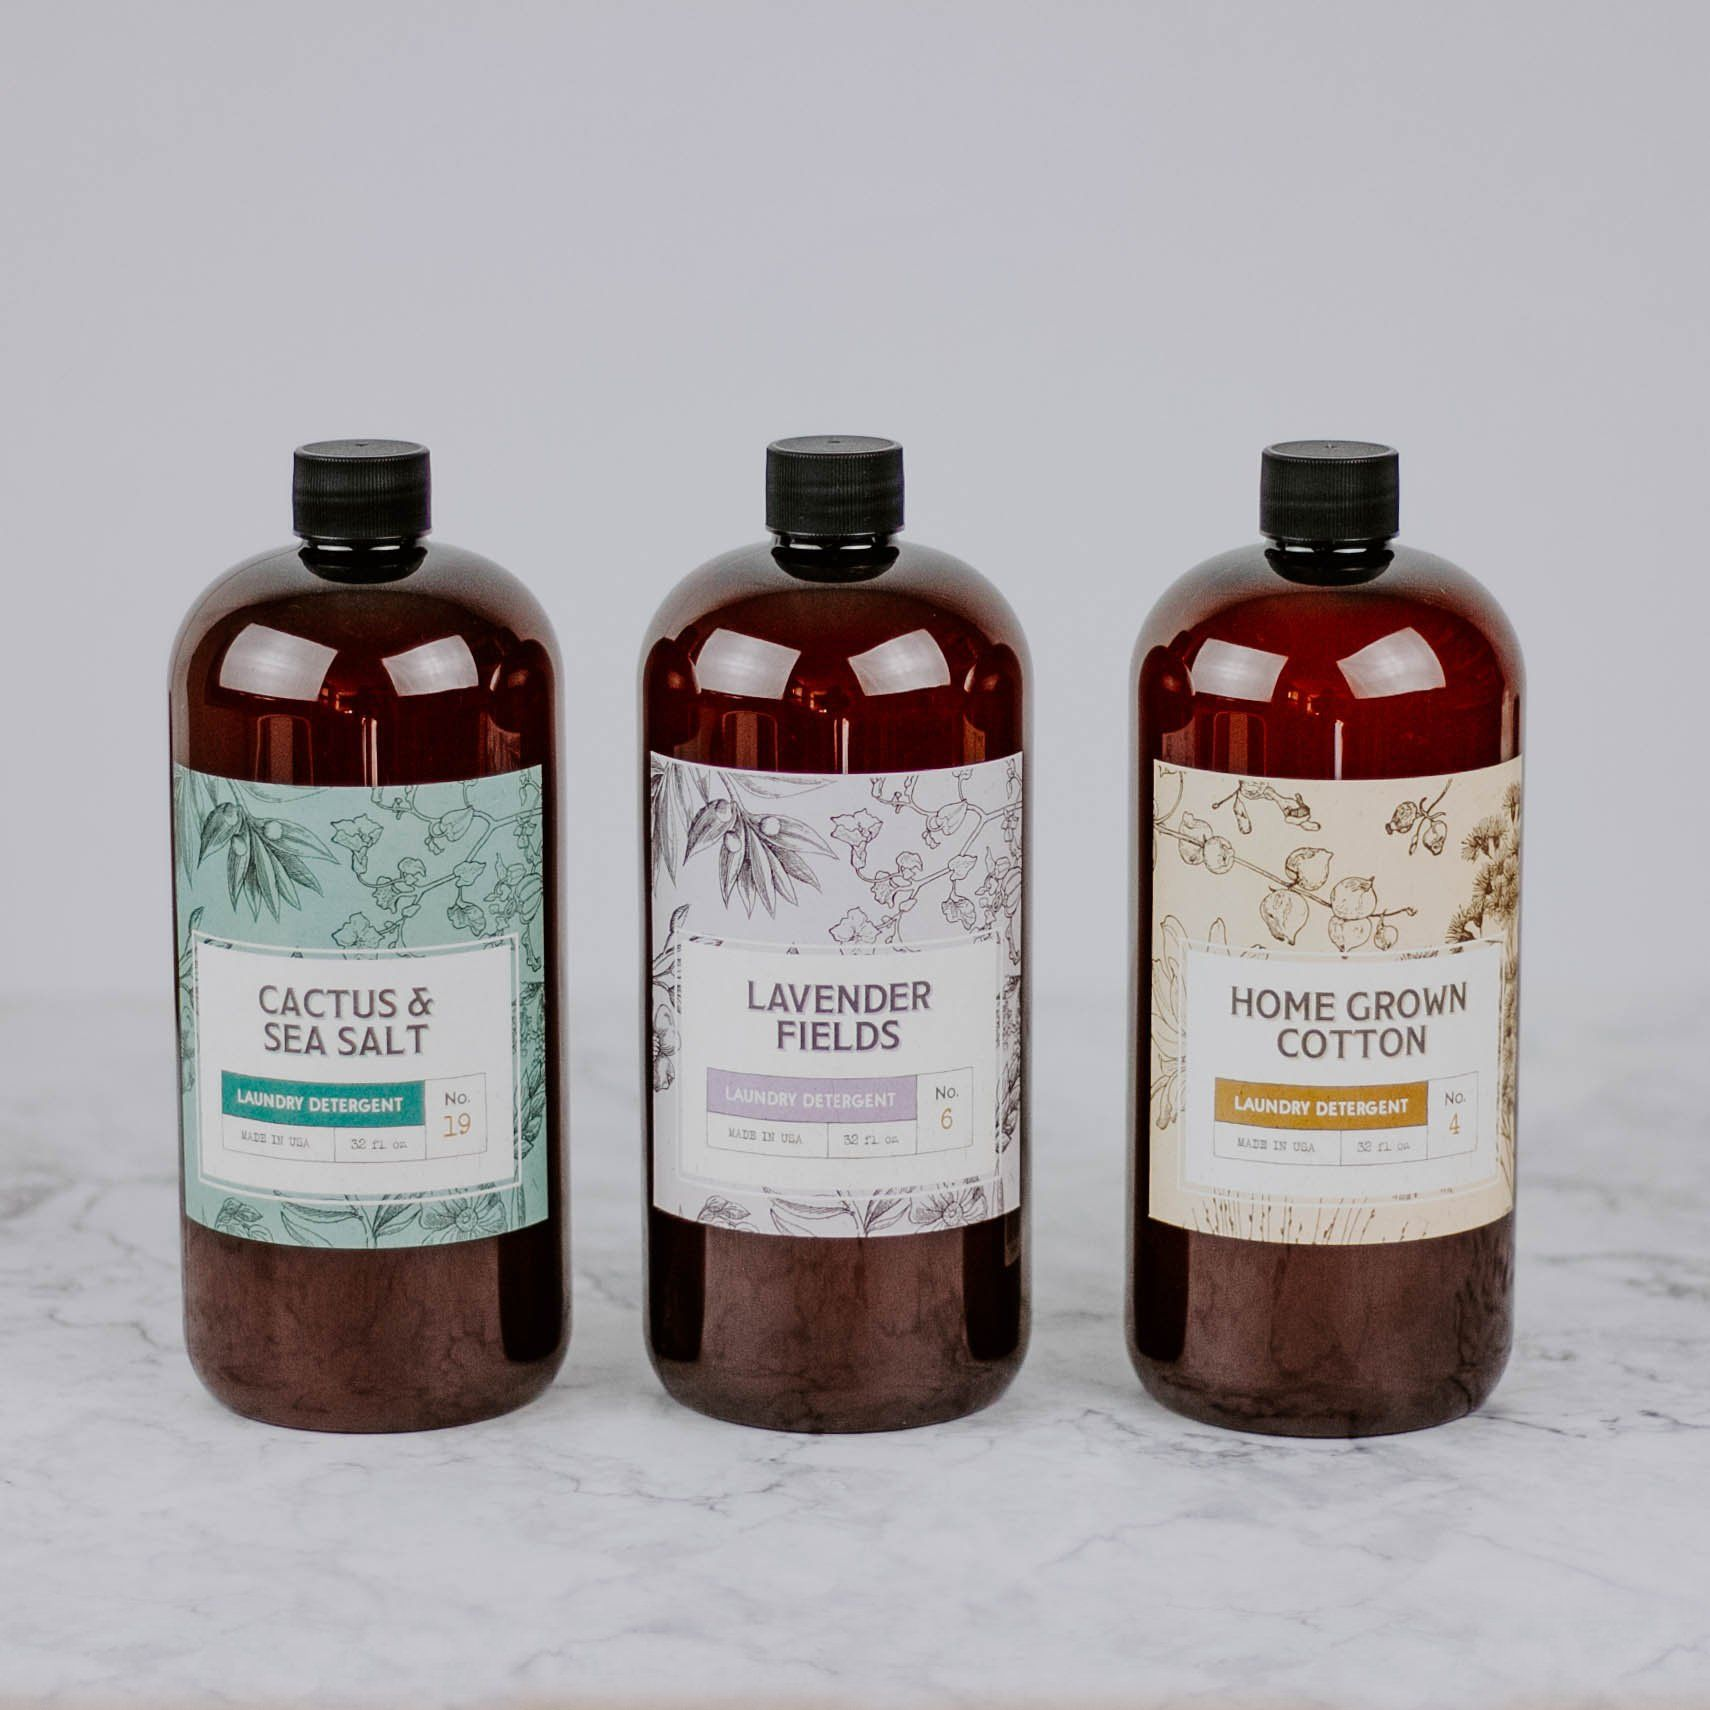 Luxe Laundry Detergent In 2020 Scented Laundry Detergent